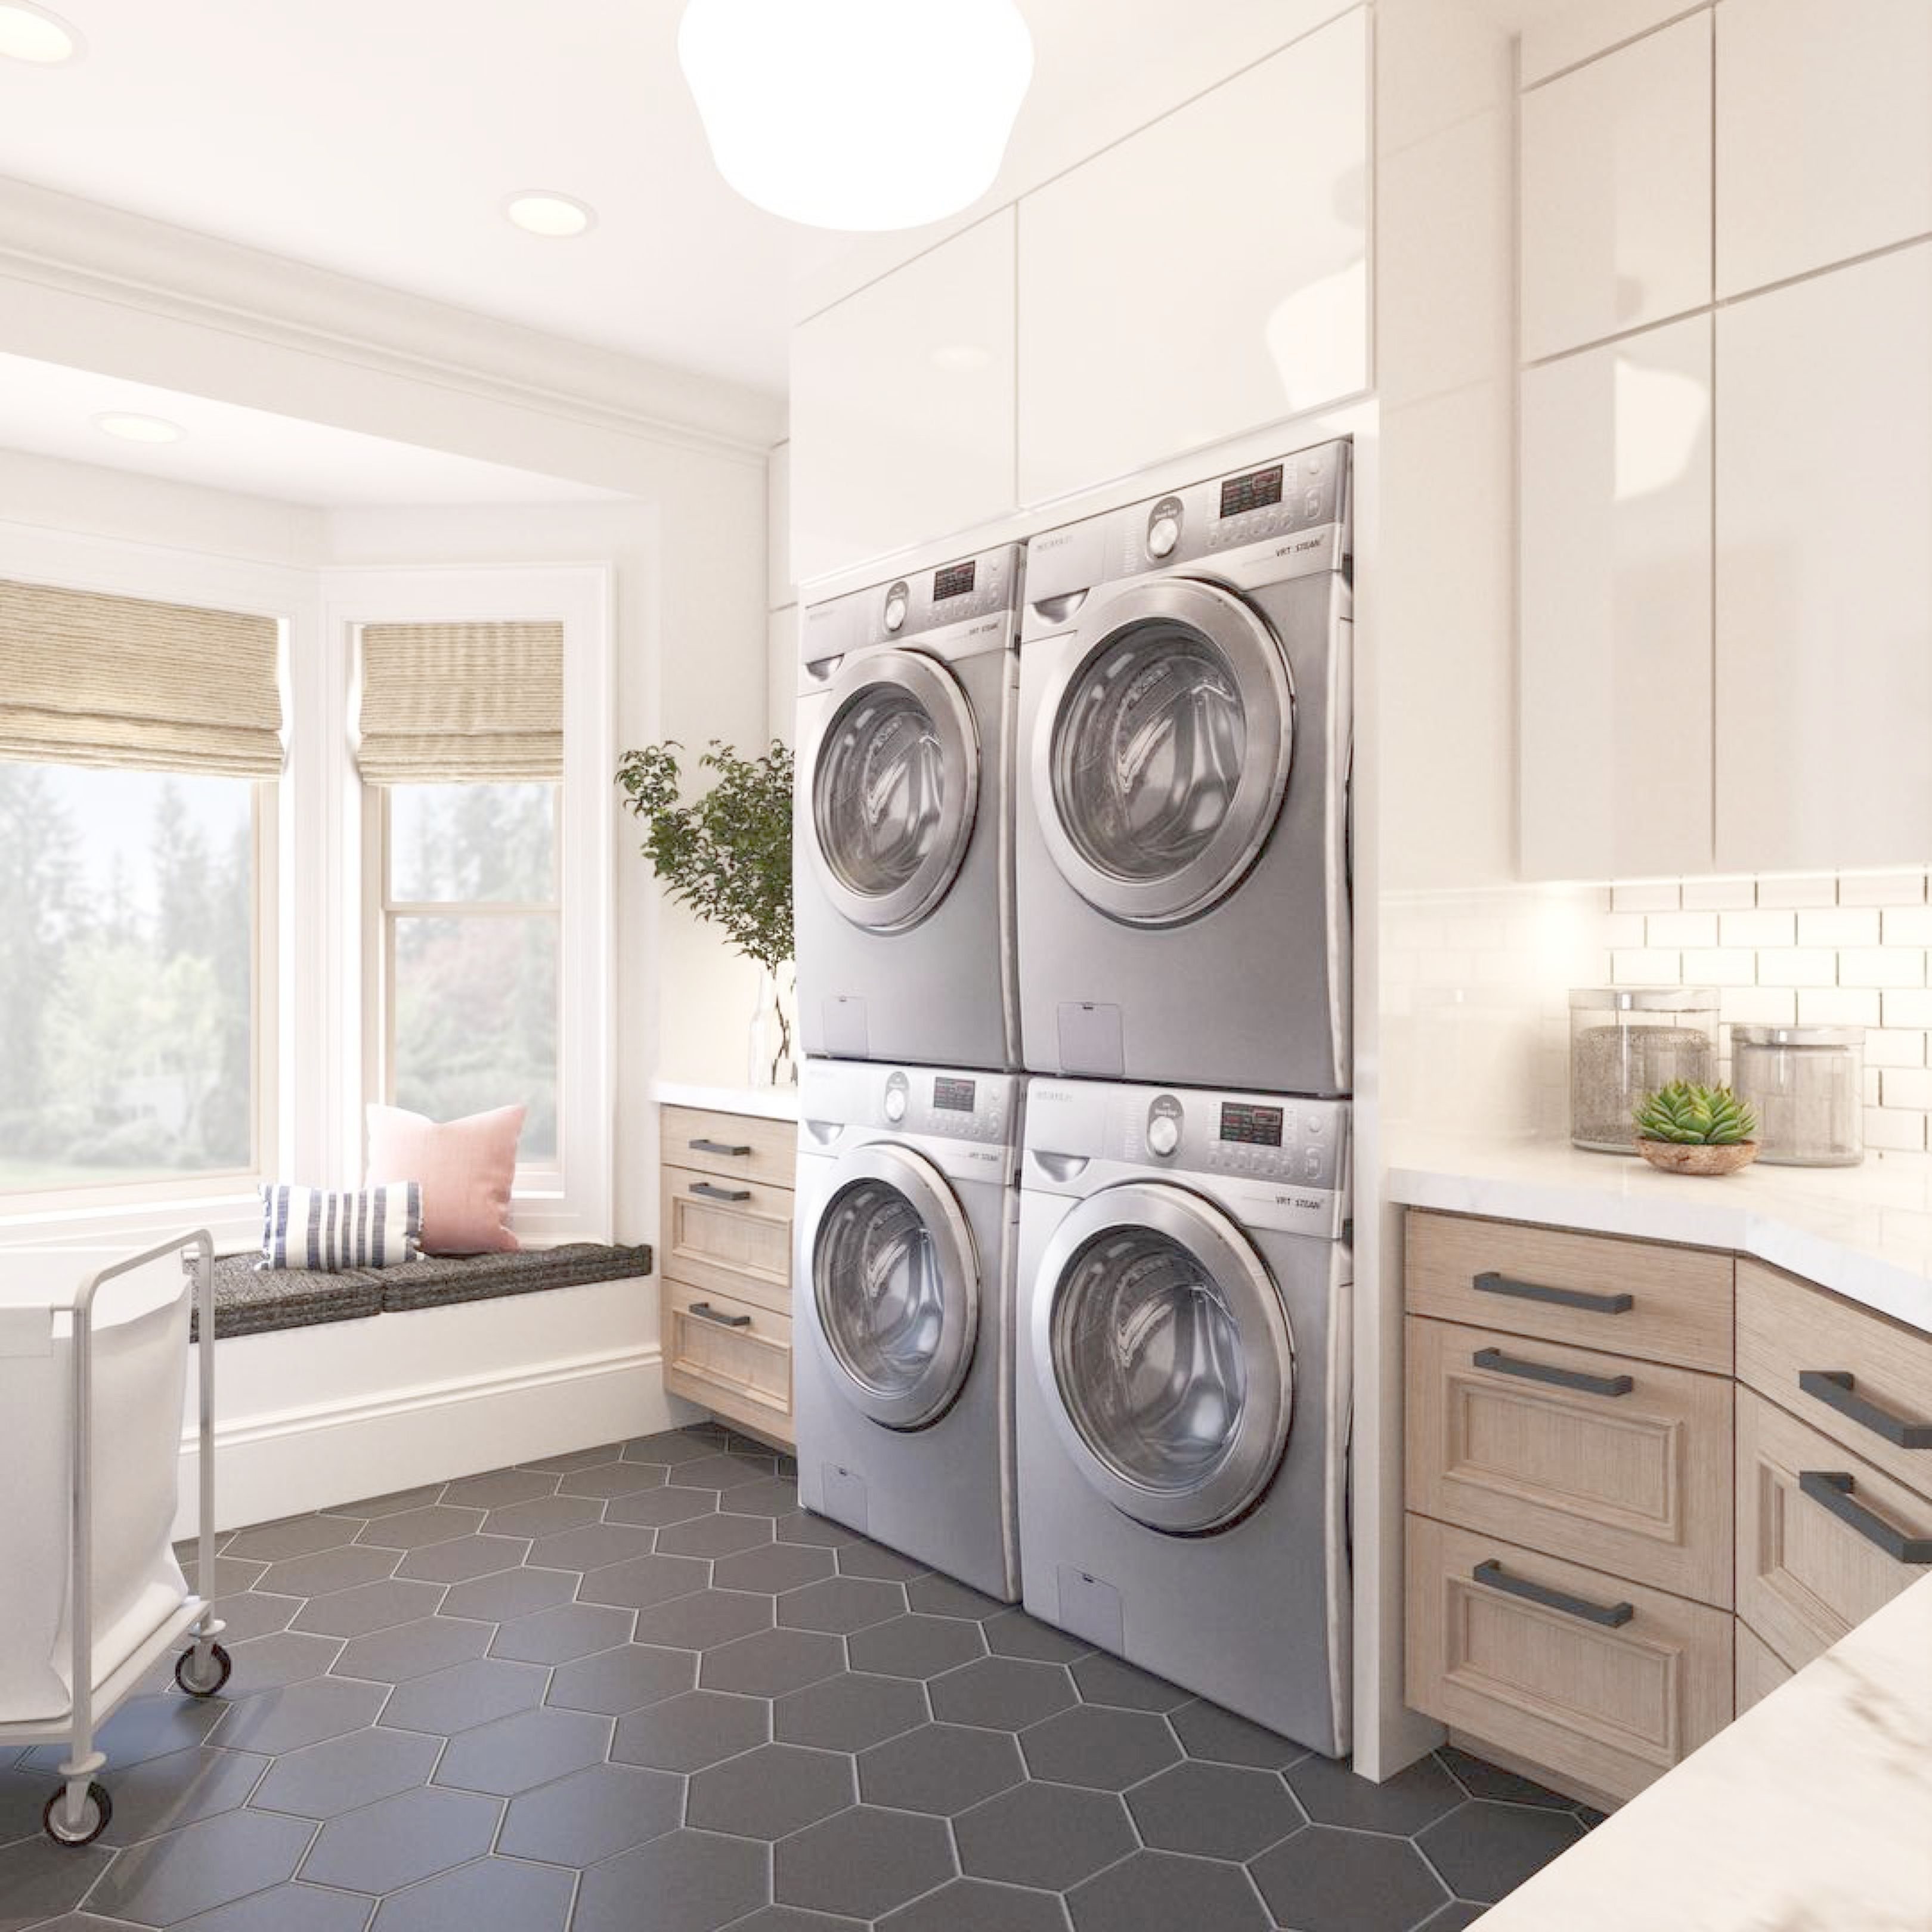 How Much Do You Love This Double Decker Laundry Idea